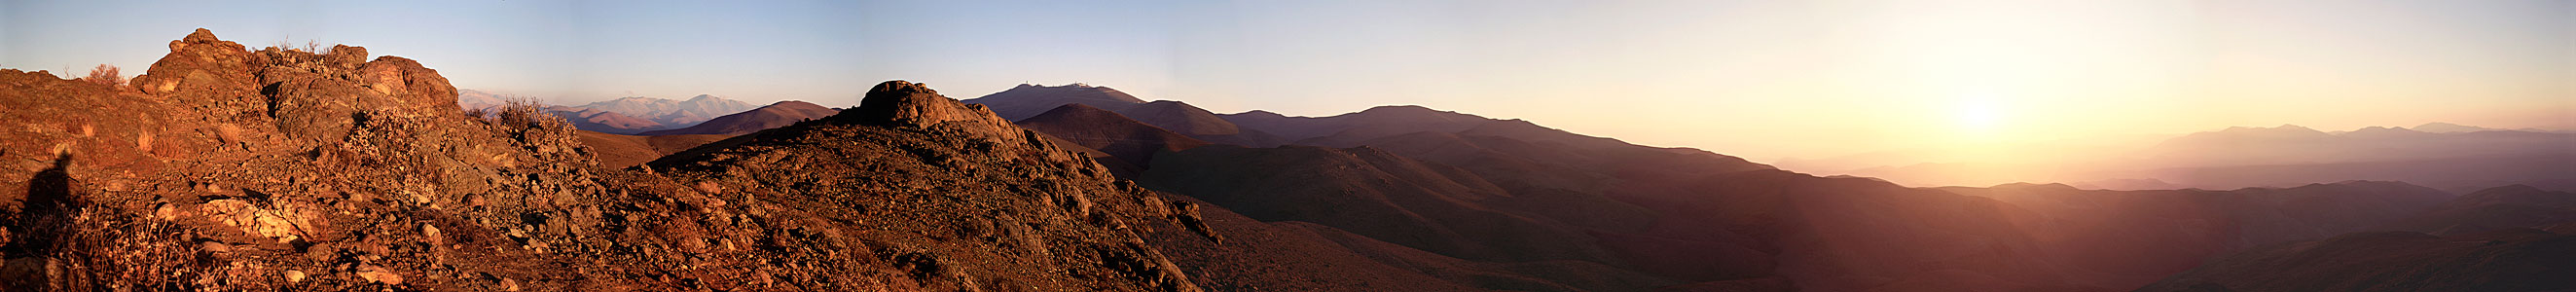 Panoramic View with La Silla